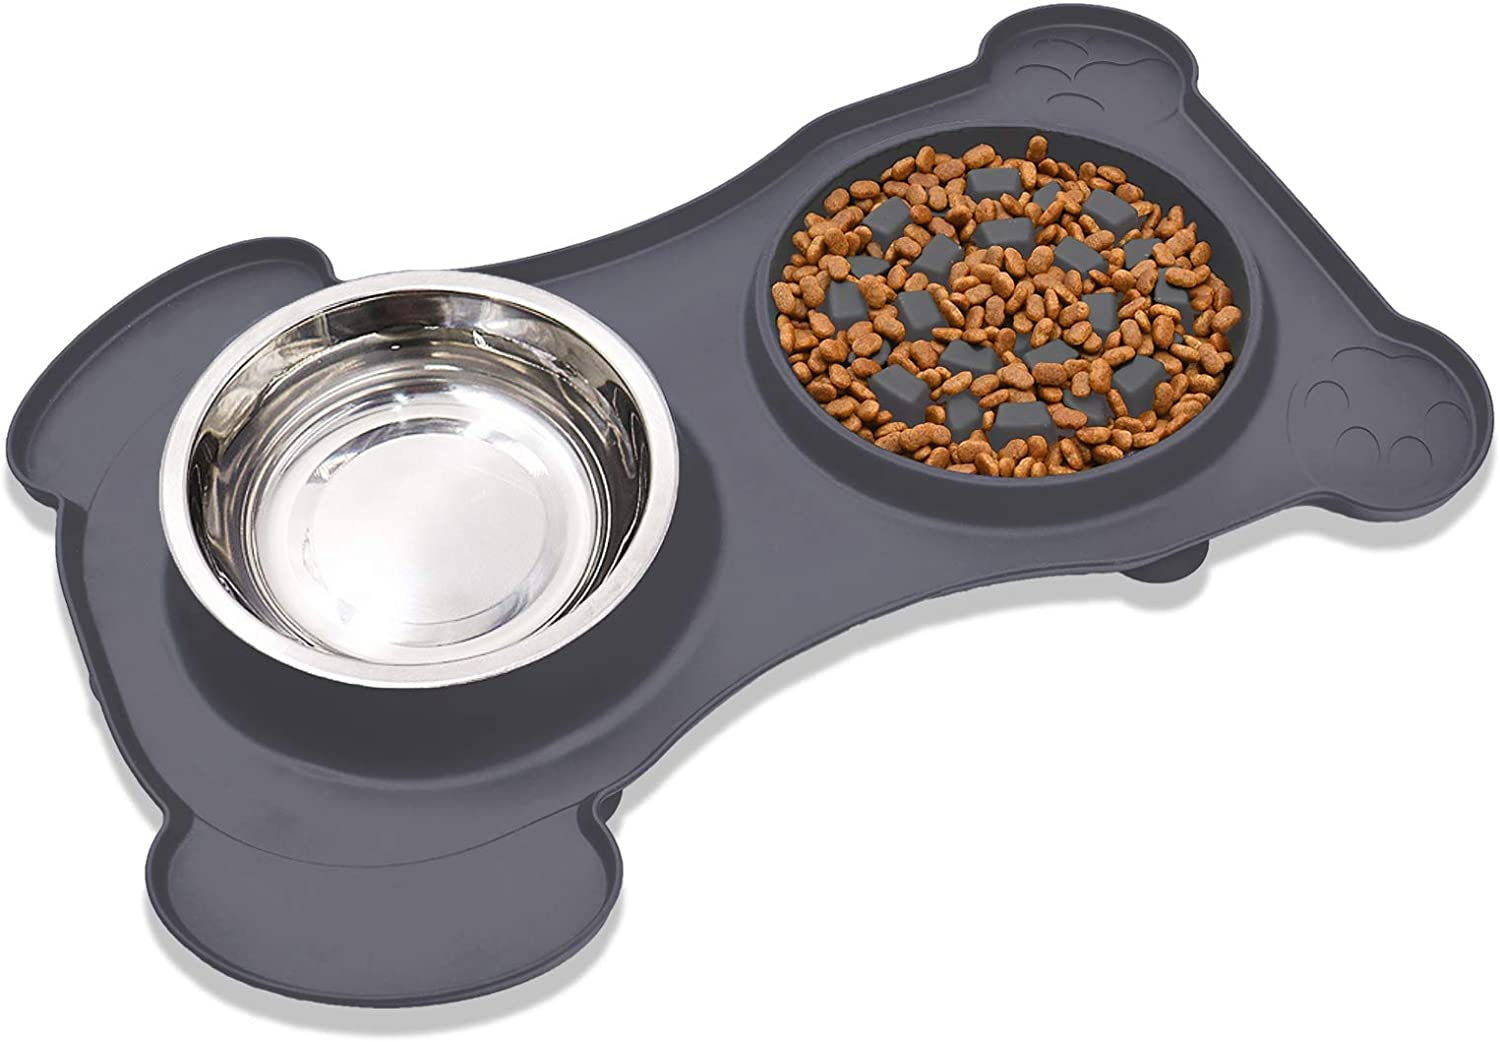 2 in 1 Slow Feeder Dog Bowl & Water Bowl Silicone Set - Stainless Steel Water & Food Dish Bowls with Non-Toxic, No Spill, Non Slip, Silicone Mat for Small / Medium / Large Pet, Grey